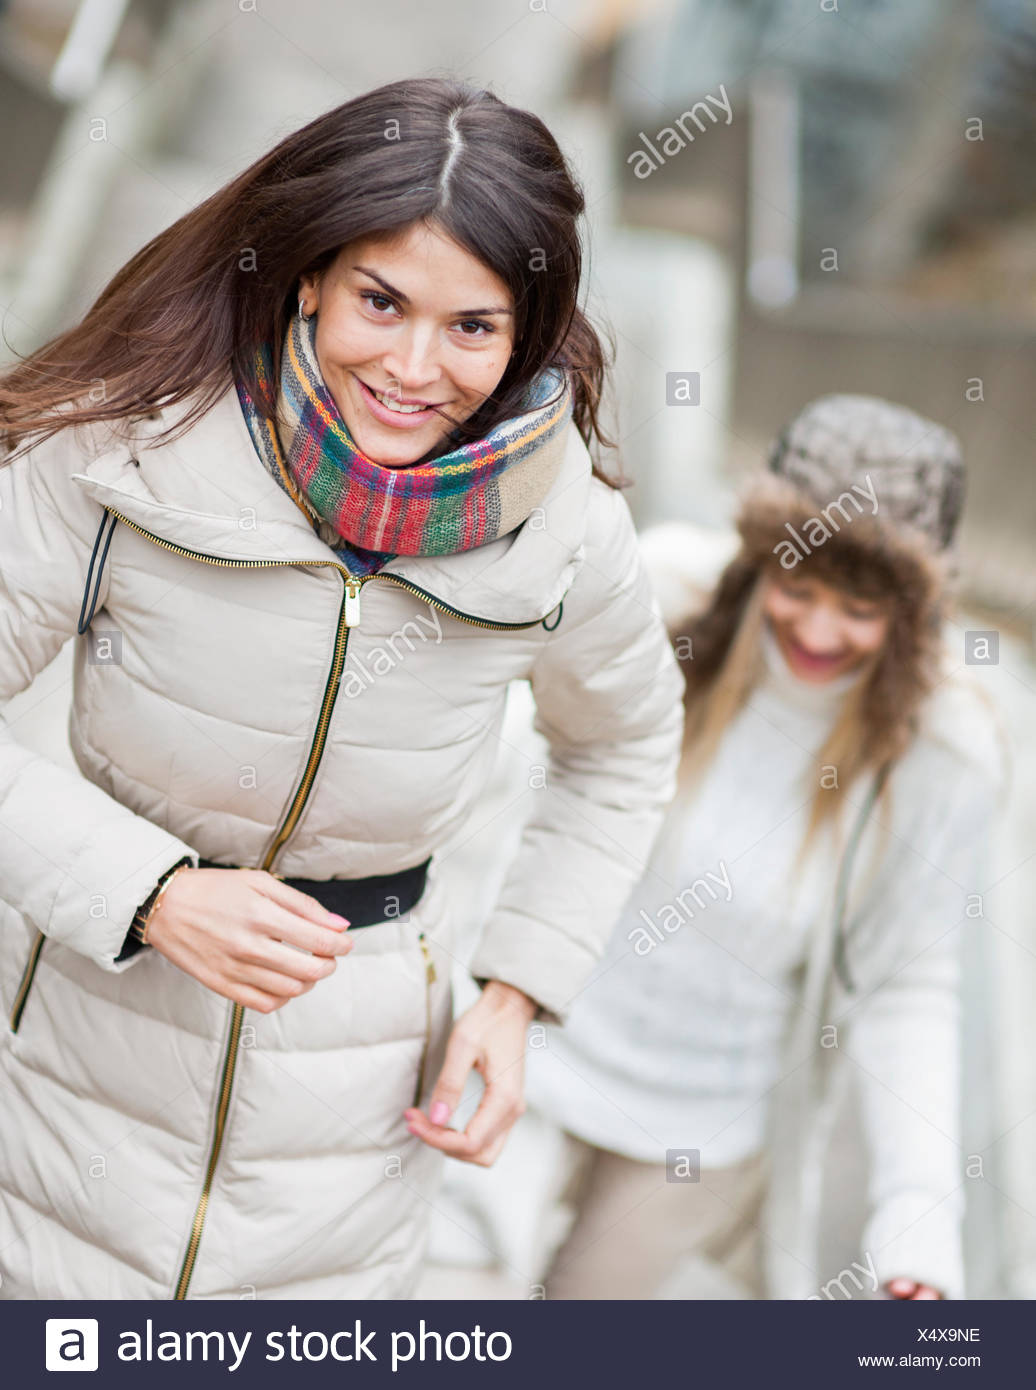 Smiling young woman climbing stairs with friend outdoors - Stock Image